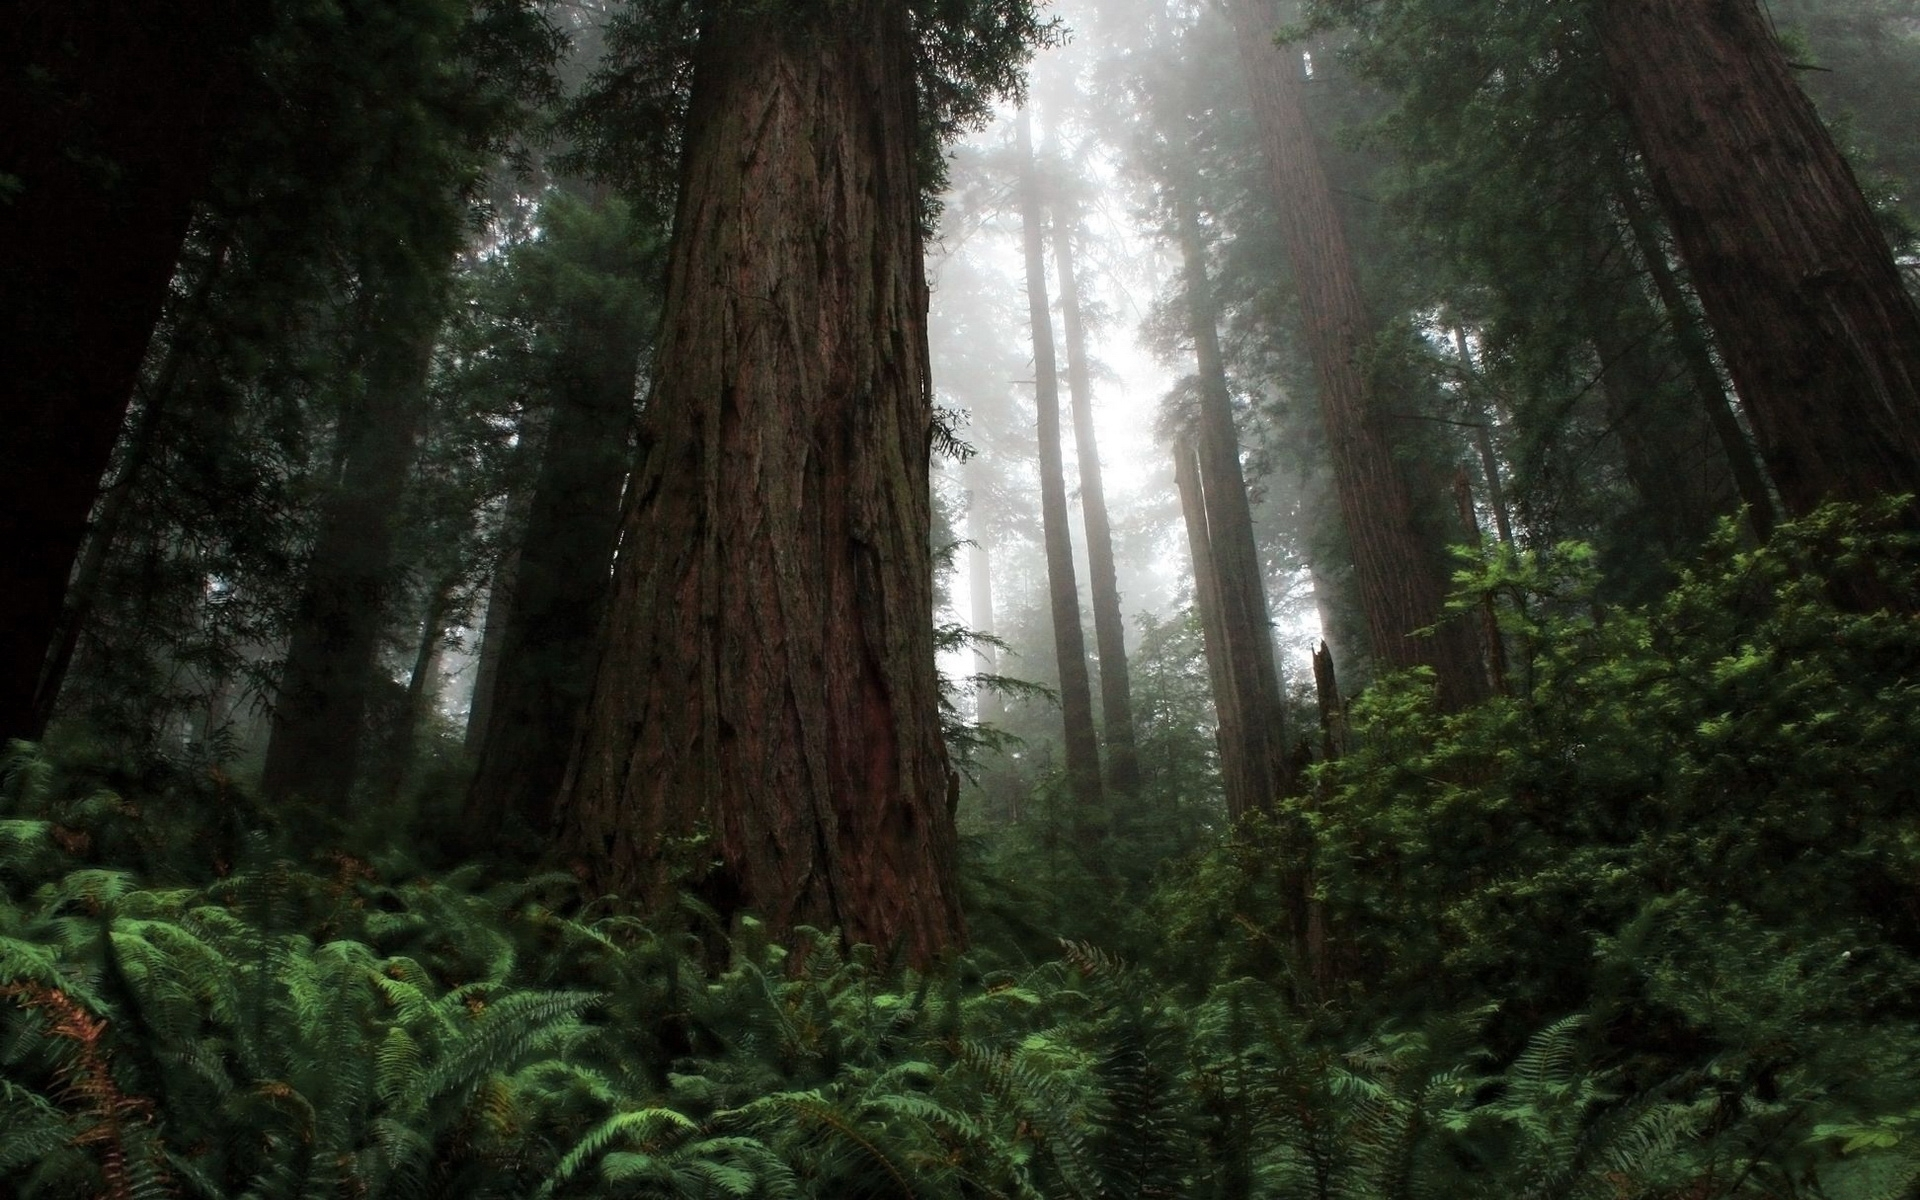 California Redwoods Hd Widescreen Desktop Wallpaper 1920x1200px